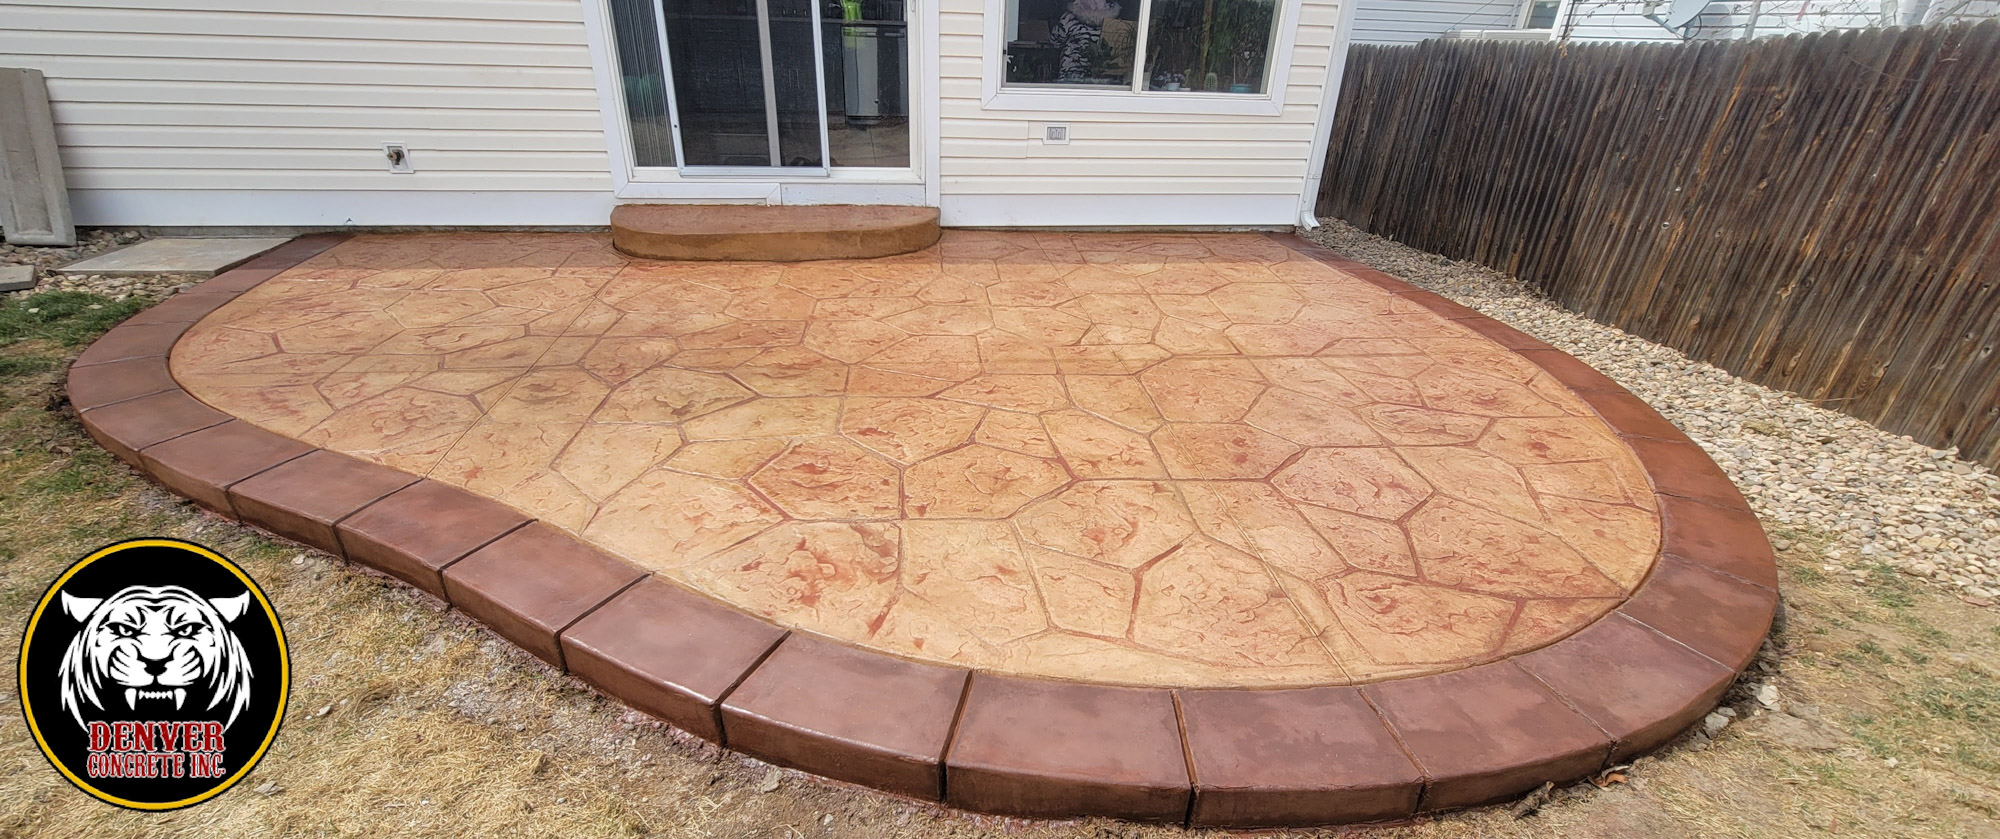 Green Valley, Denver, Co Stamped Concrete Patio